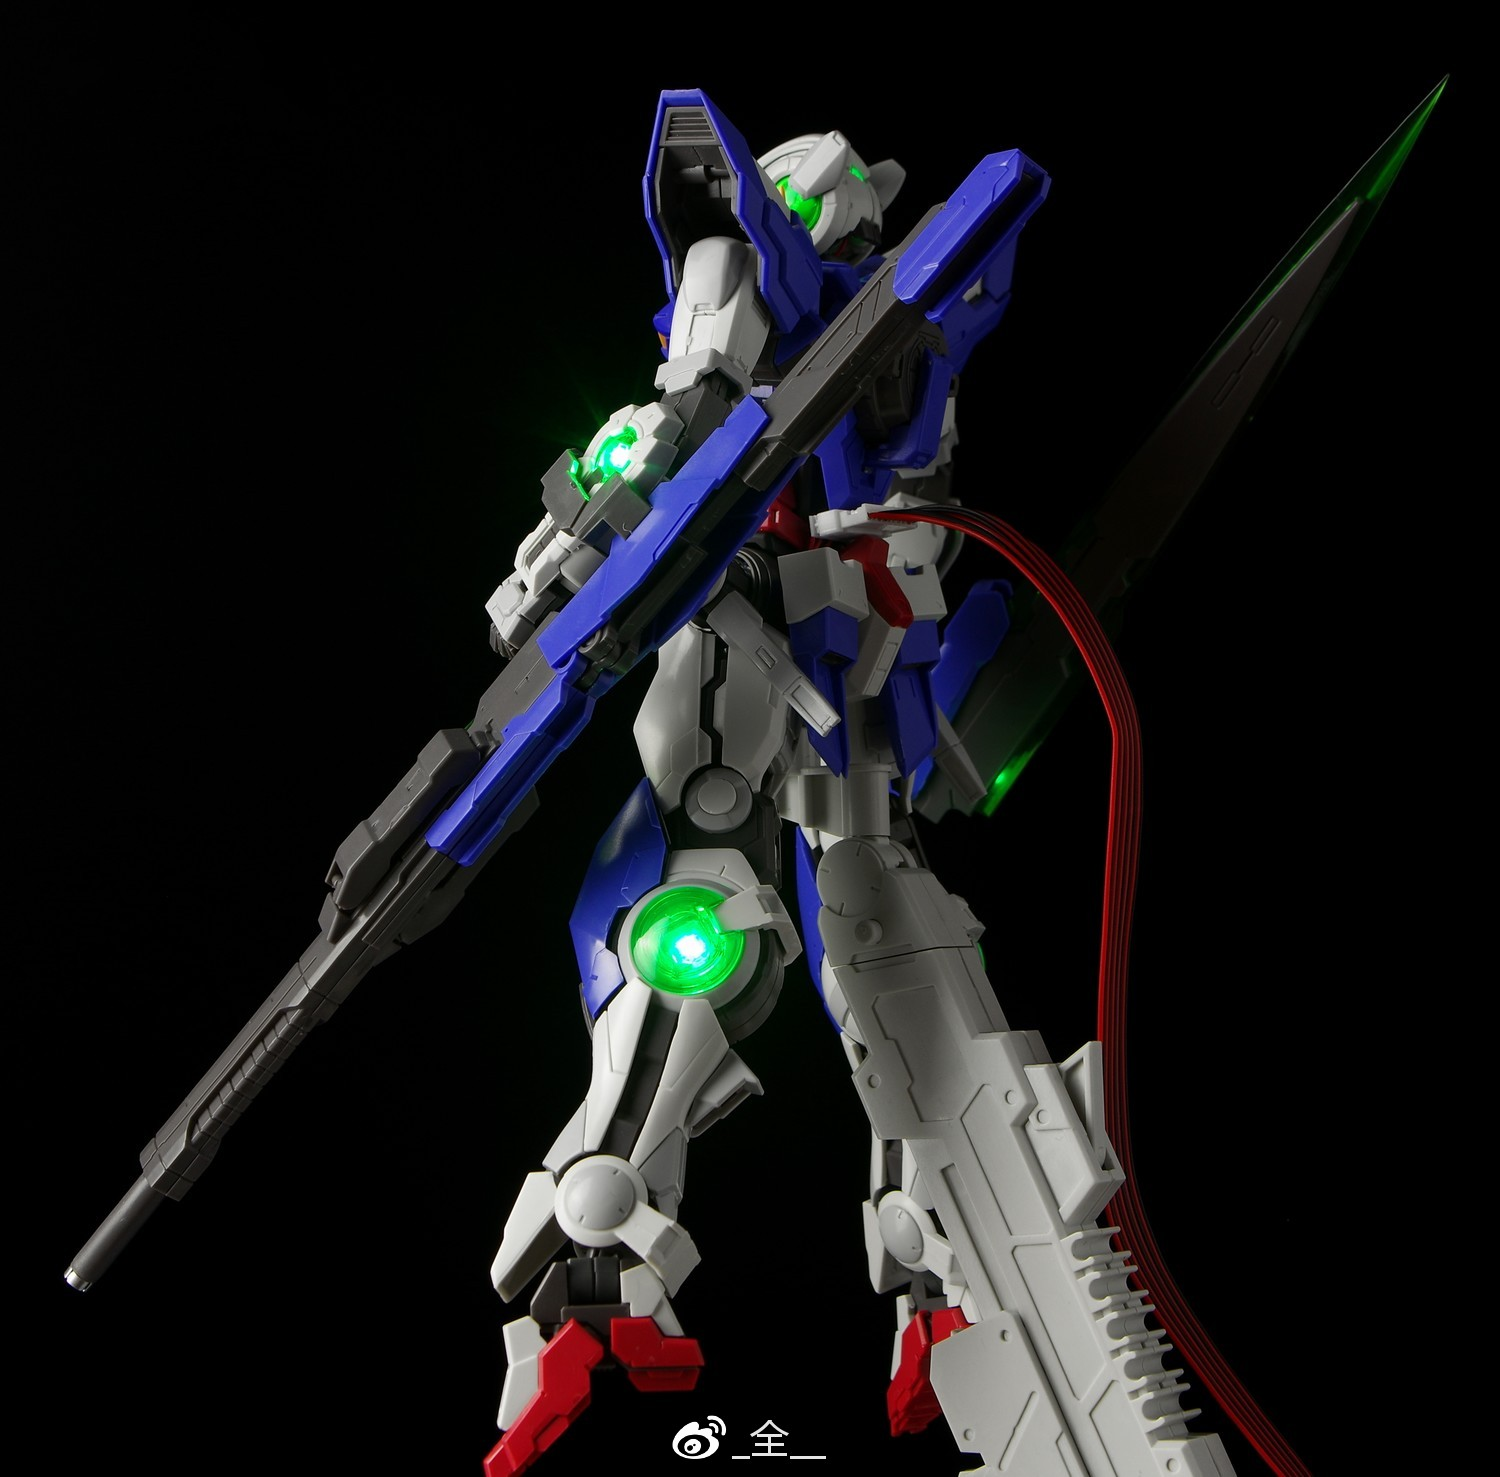 S269_mg_exia_led_hobby_star_inask_103.jpg